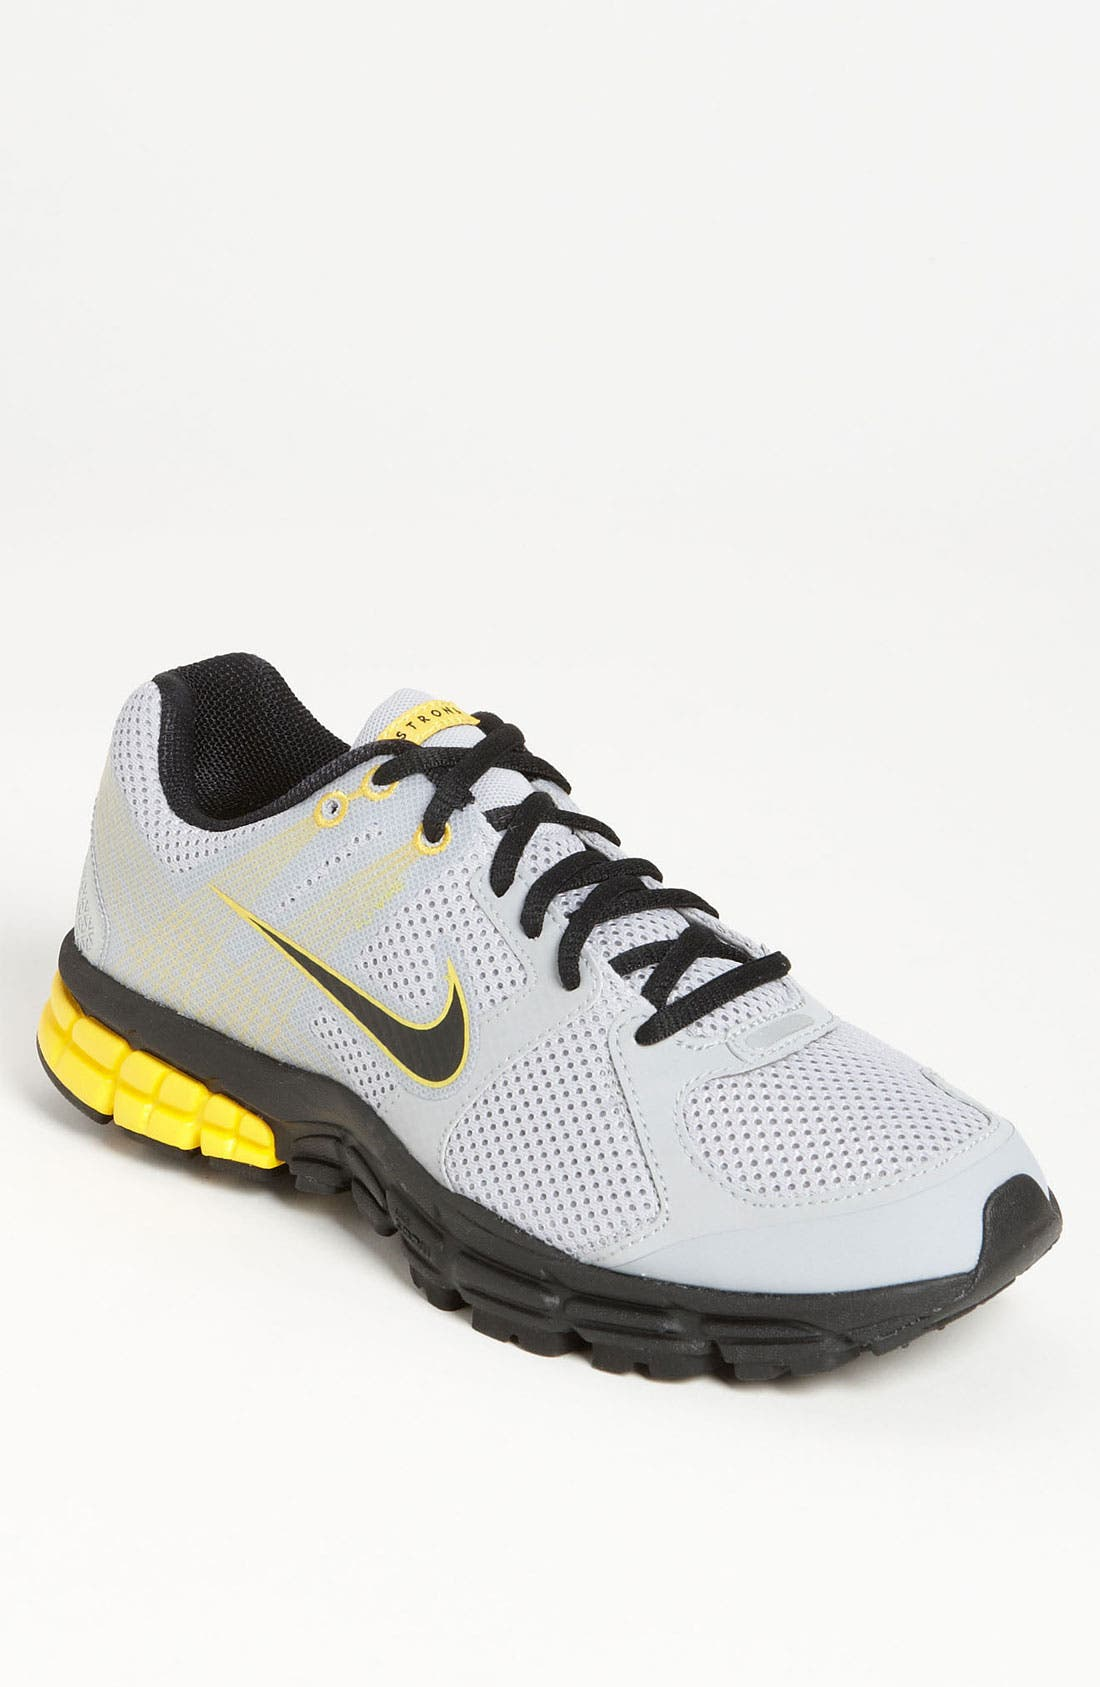 Main Image - Nike 'LIVESTRONG Zoom Structure+ 15' Running Shoe (Men)